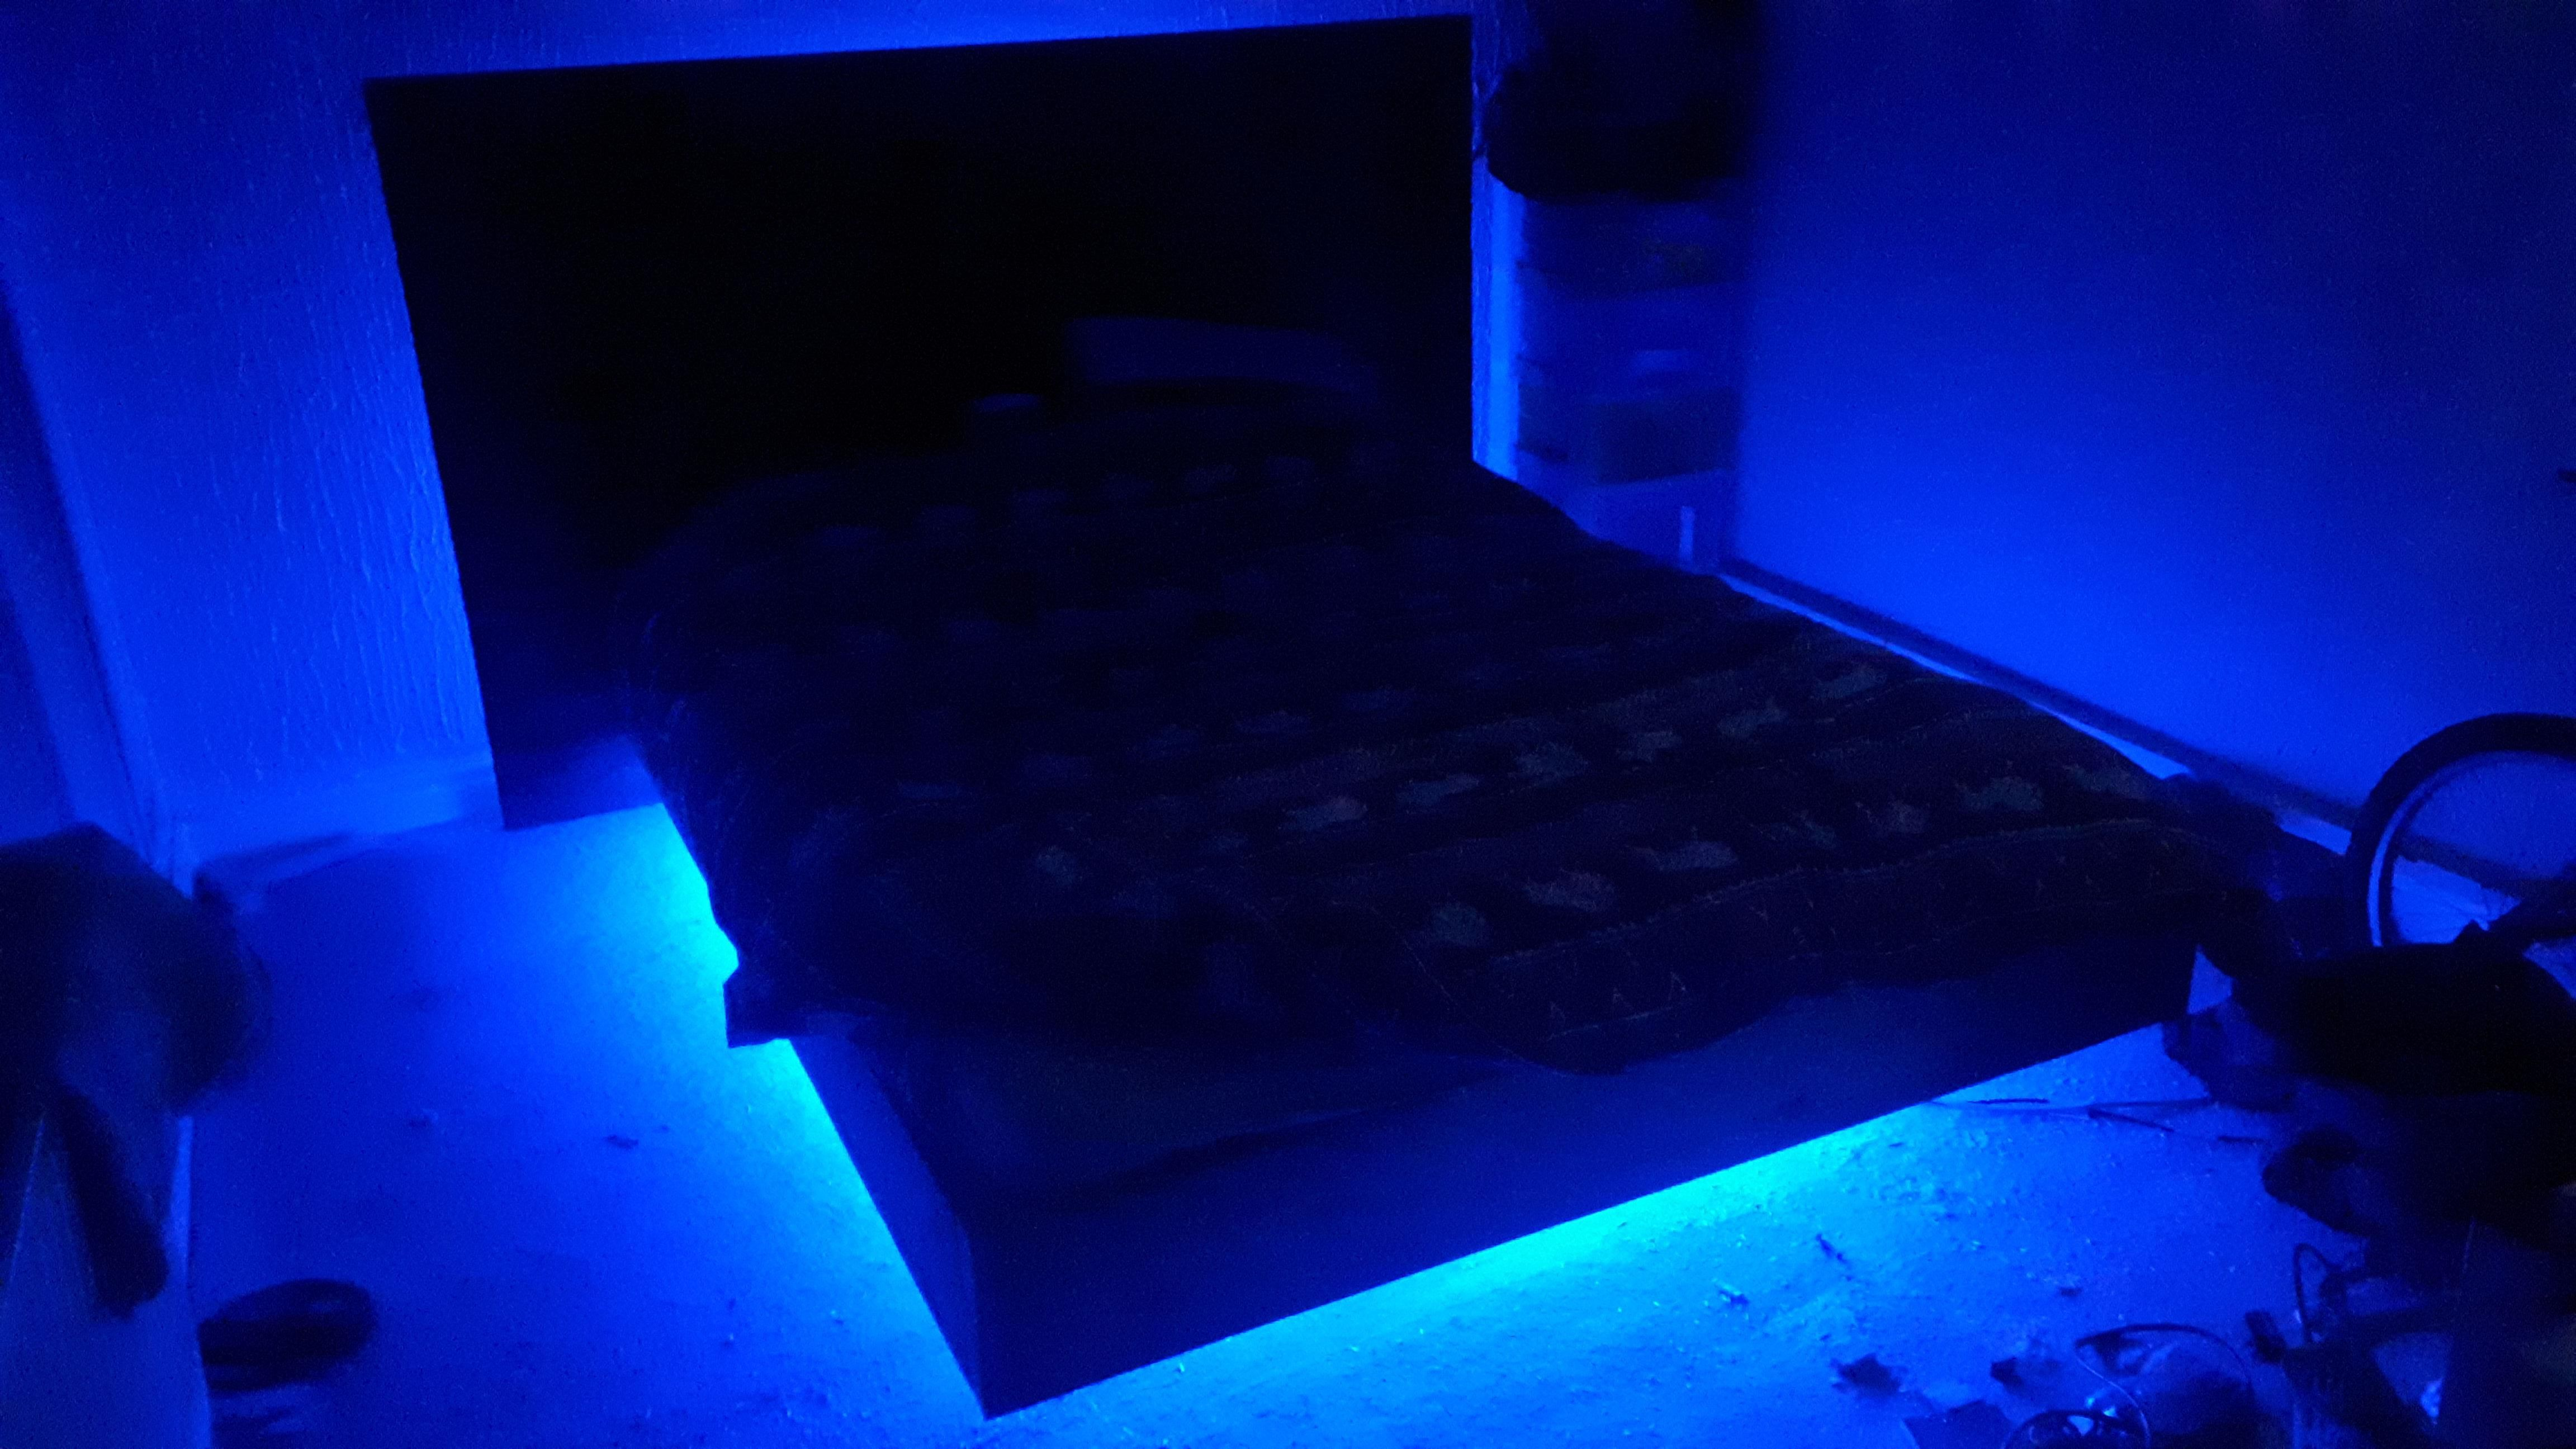 Made a floating bed with LED lights. Got more pics but I